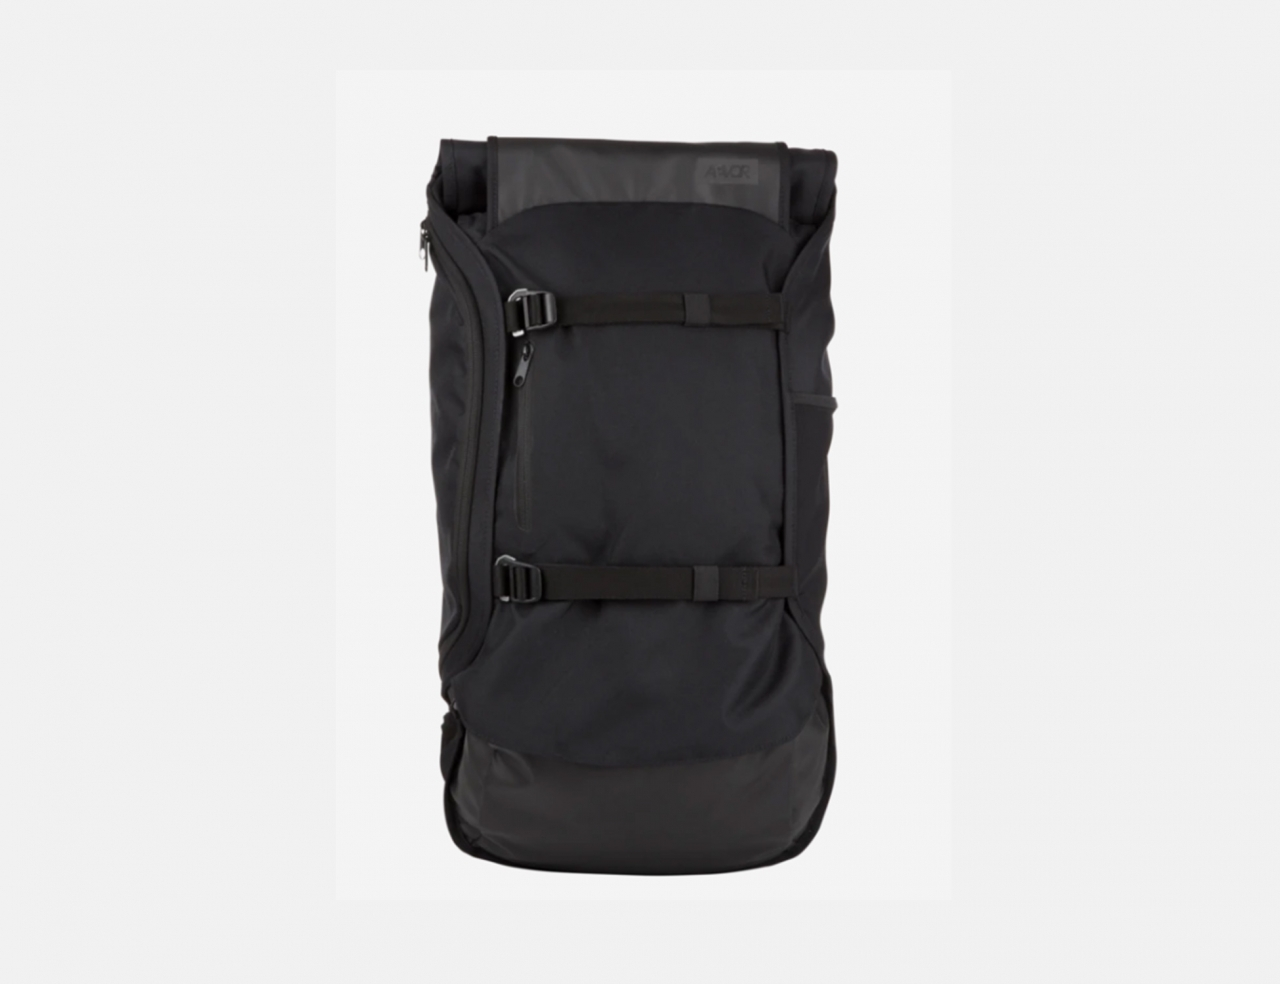 Aevor Travel Pack Backpack - Black Eclipse